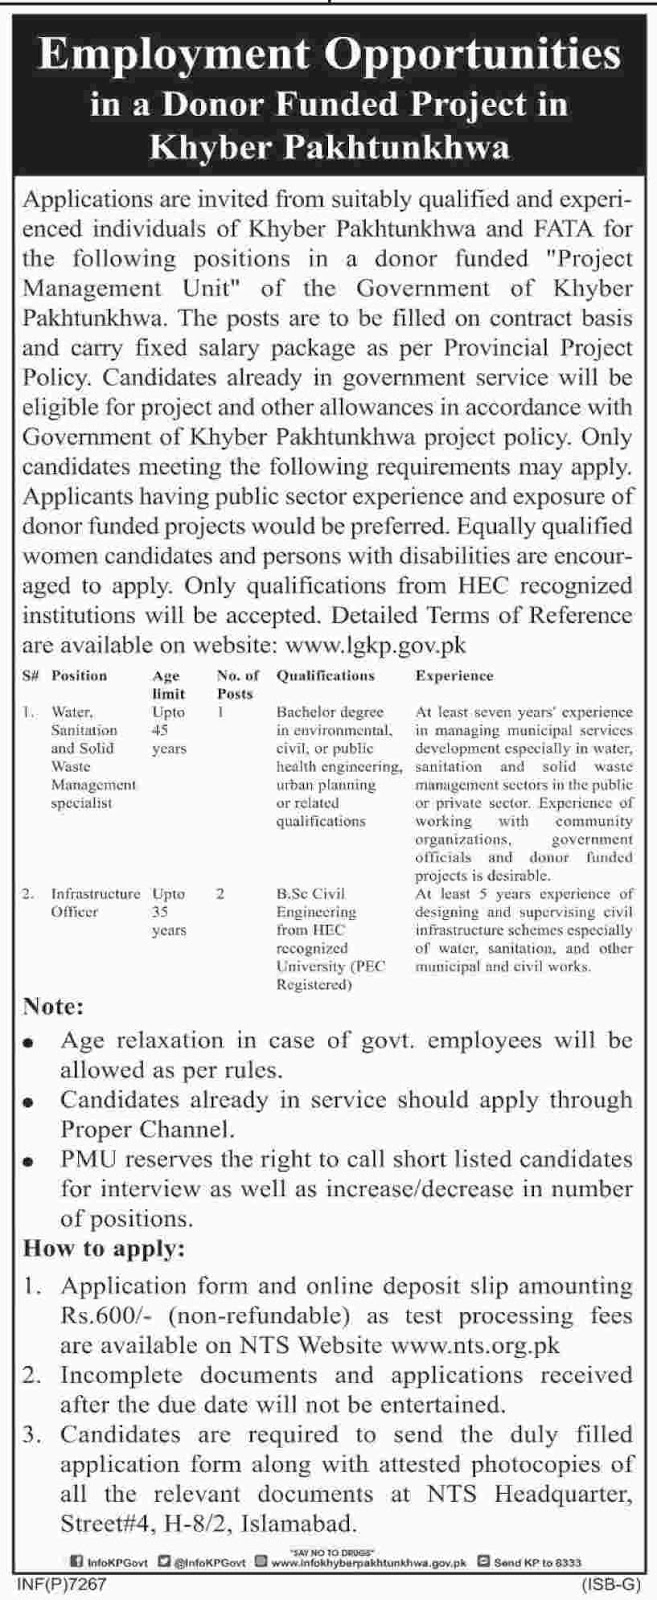 Jobs In Project Management Unit Khyber Pakhtunkhwa Dec 2017